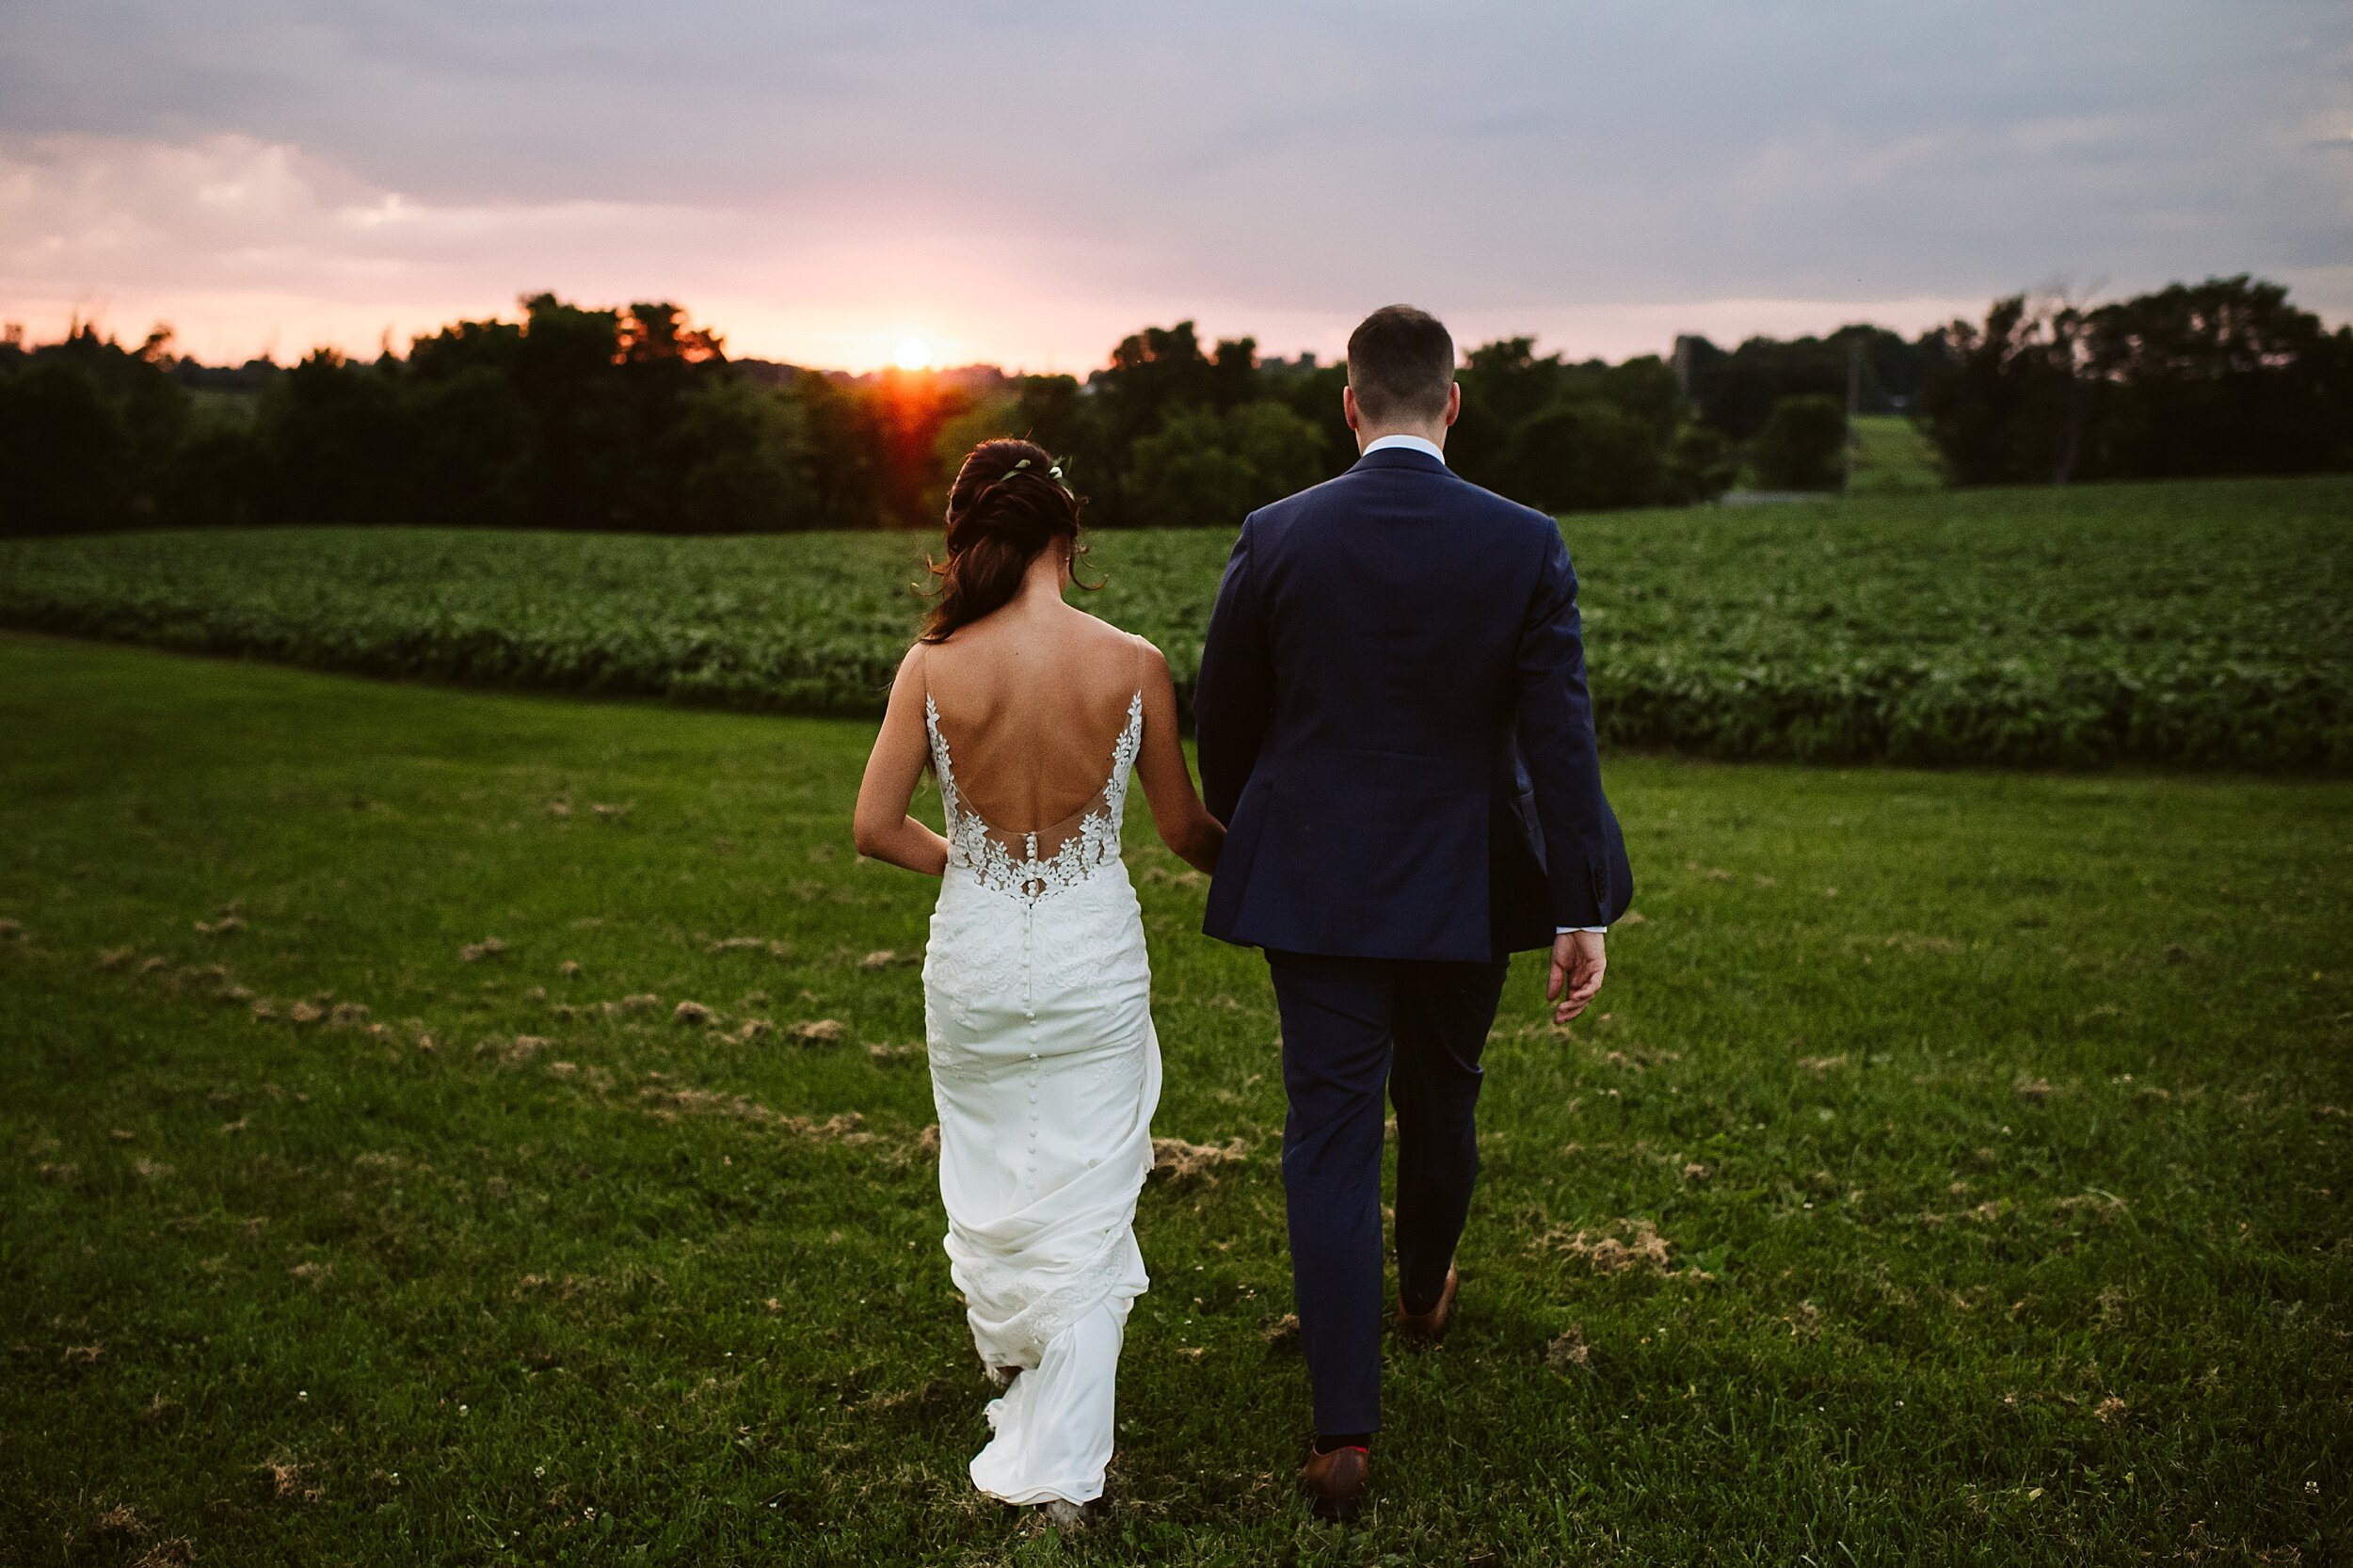 Glen_Drummon_Farm_Wedding_Toronto_Photographers_Fox_Photography_Dyments_0054.jpg